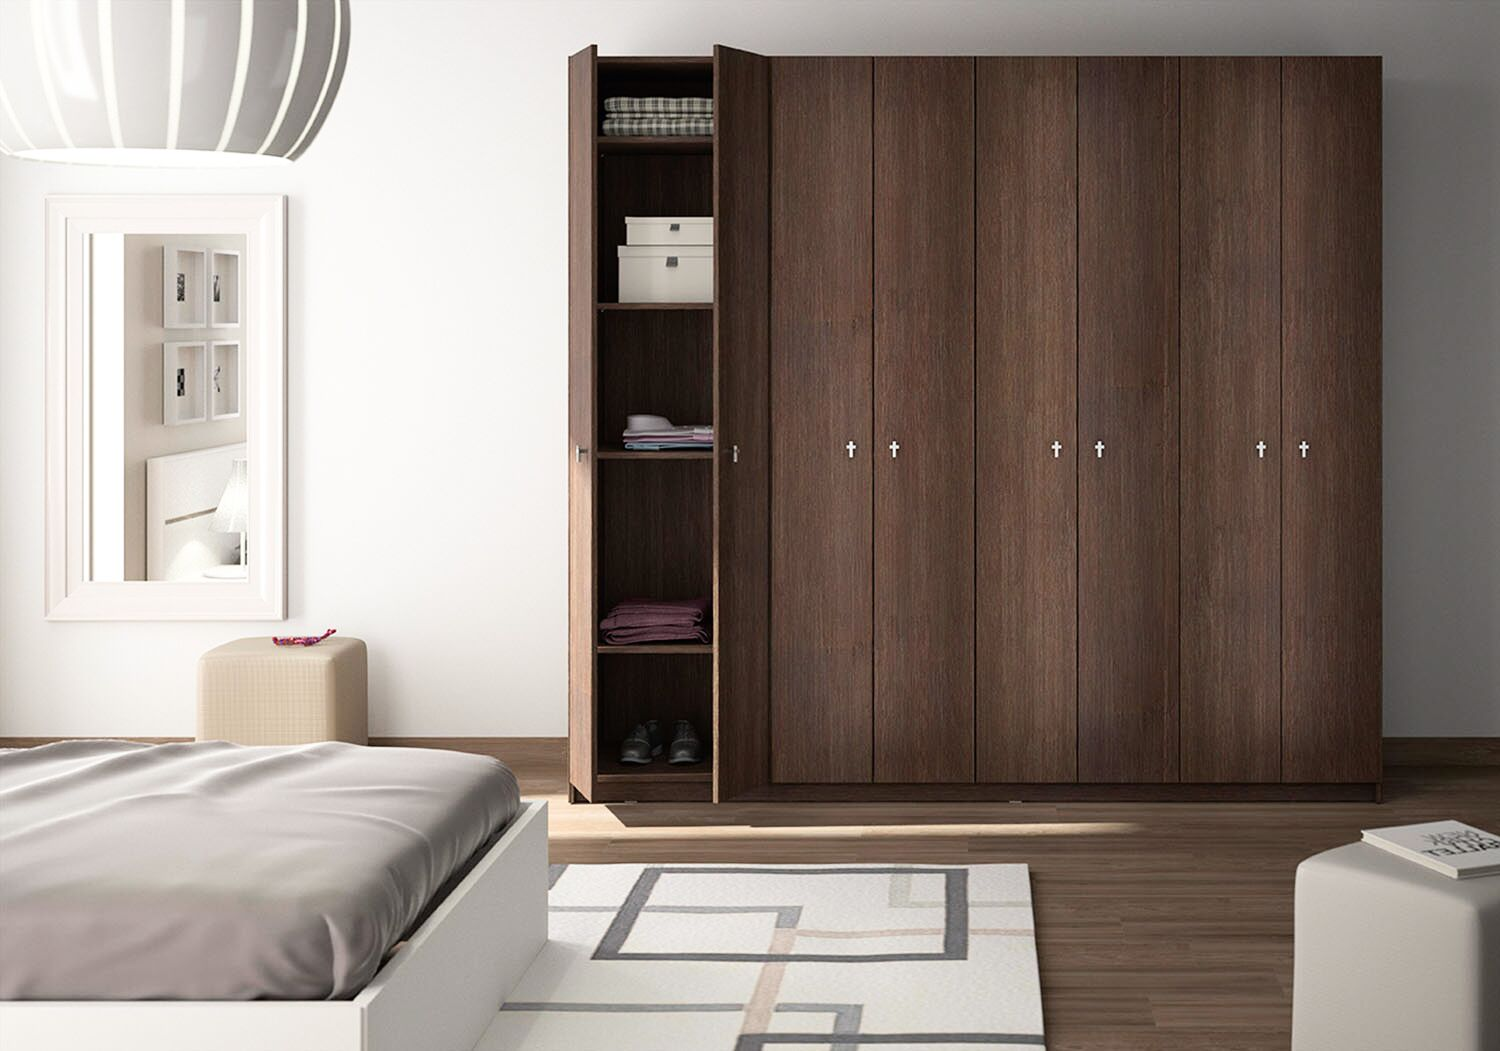 les diff rences entre l 39 armoire modulable et sur mesure. Black Bedroom Furniture Sets. Home Design Ideas